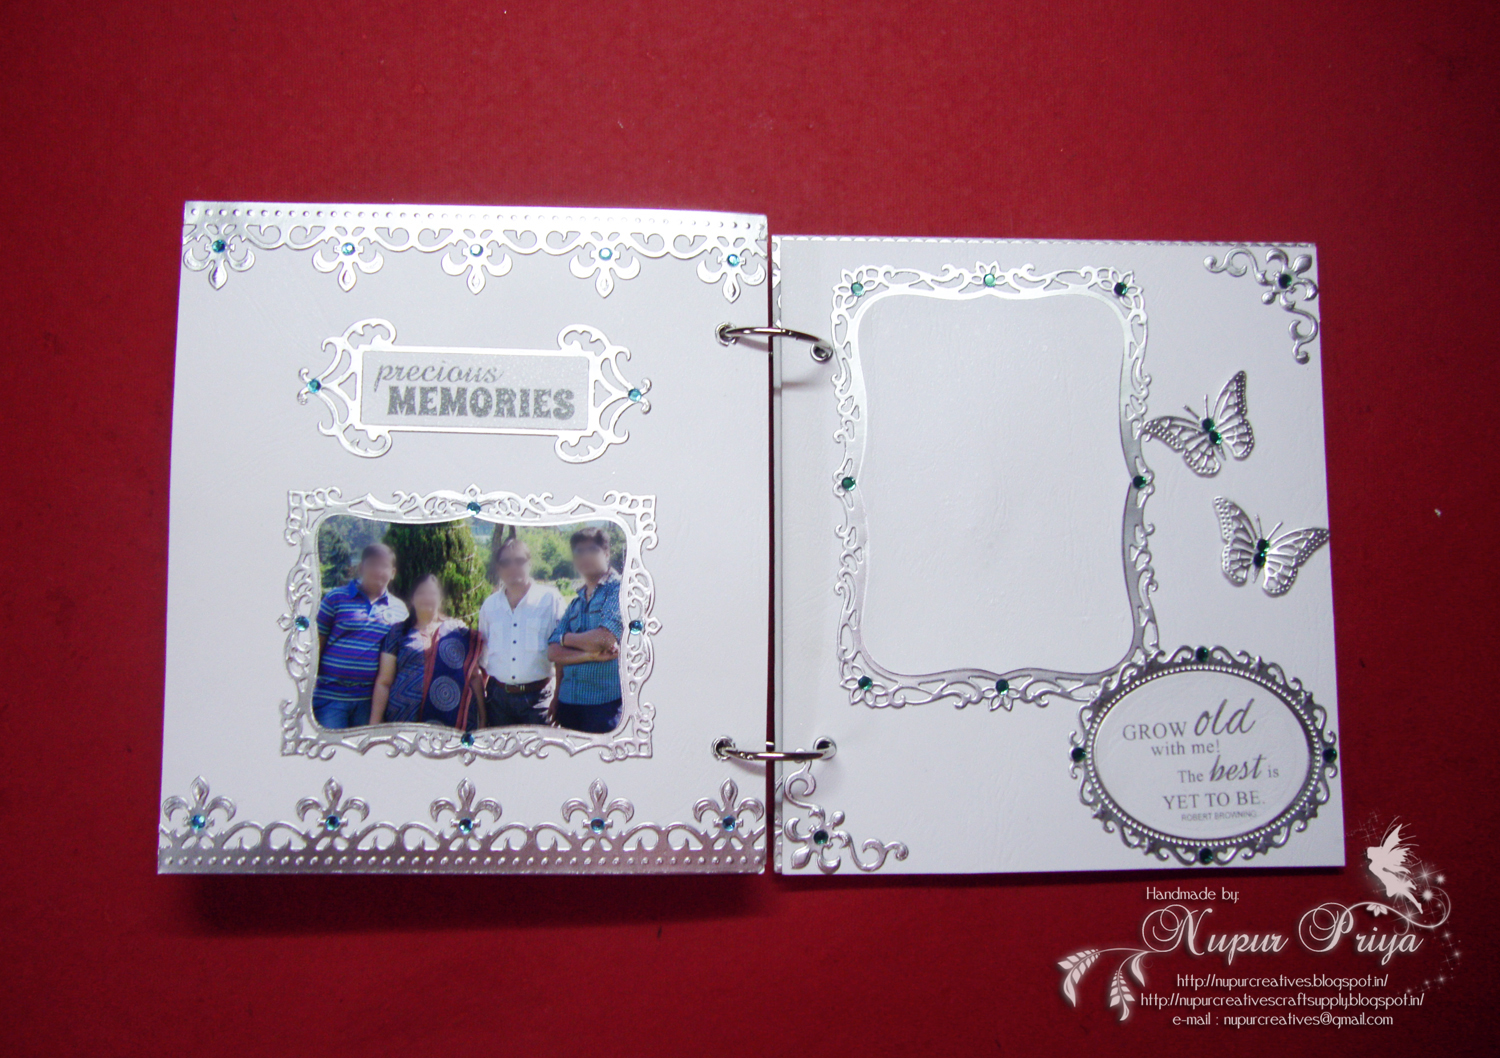 Nupur creatives: 25th wedding anniversary scrapbook